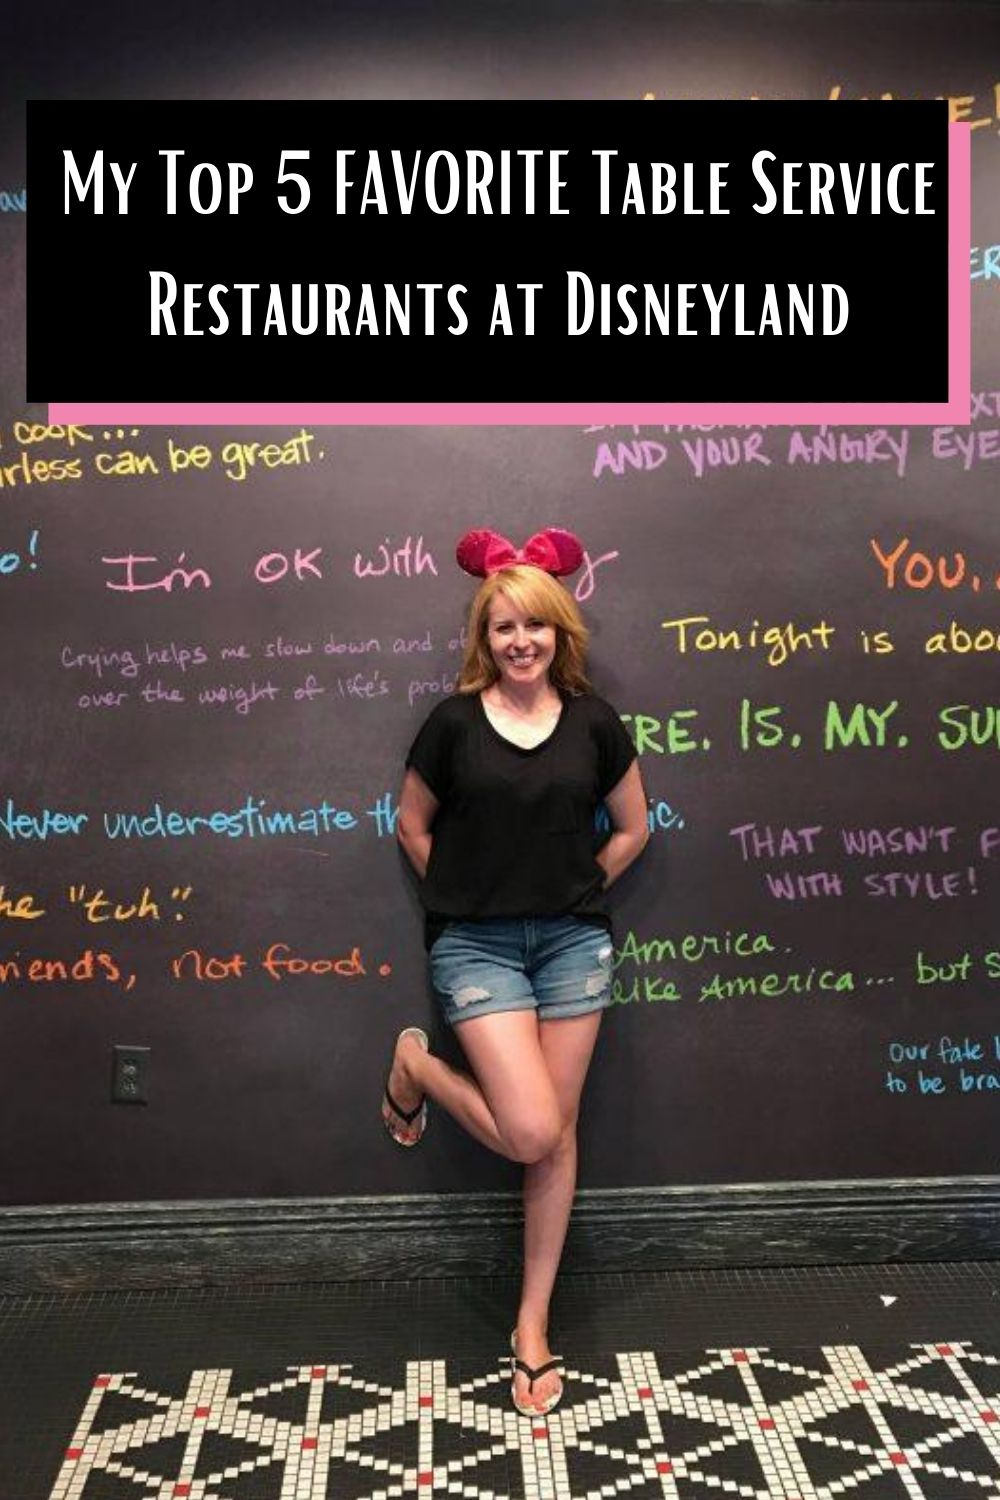 Here are my favorite restaurants to grab a meal at Disneyland! #disneyland #dl #disney #disneyfood #restaurants